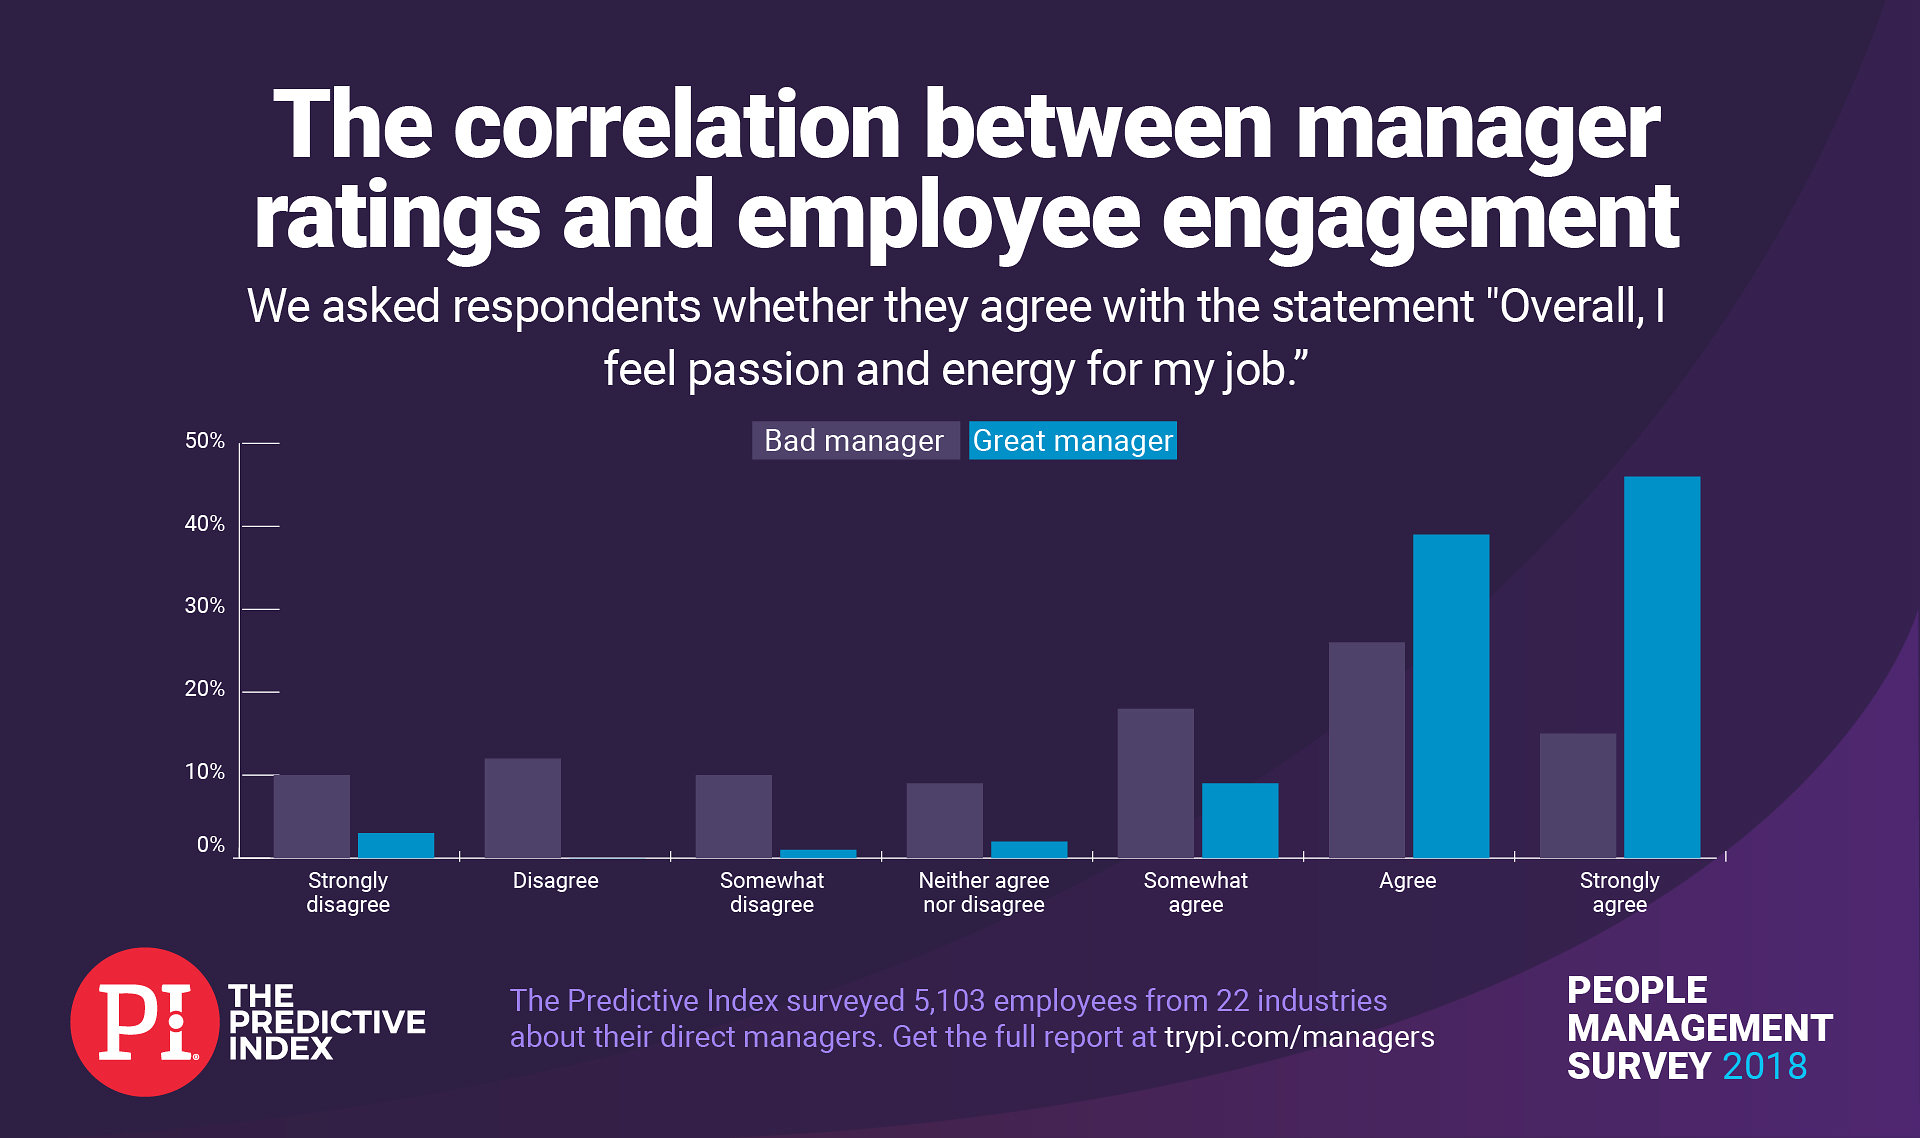 People with great managers feel more passion for their jobs.